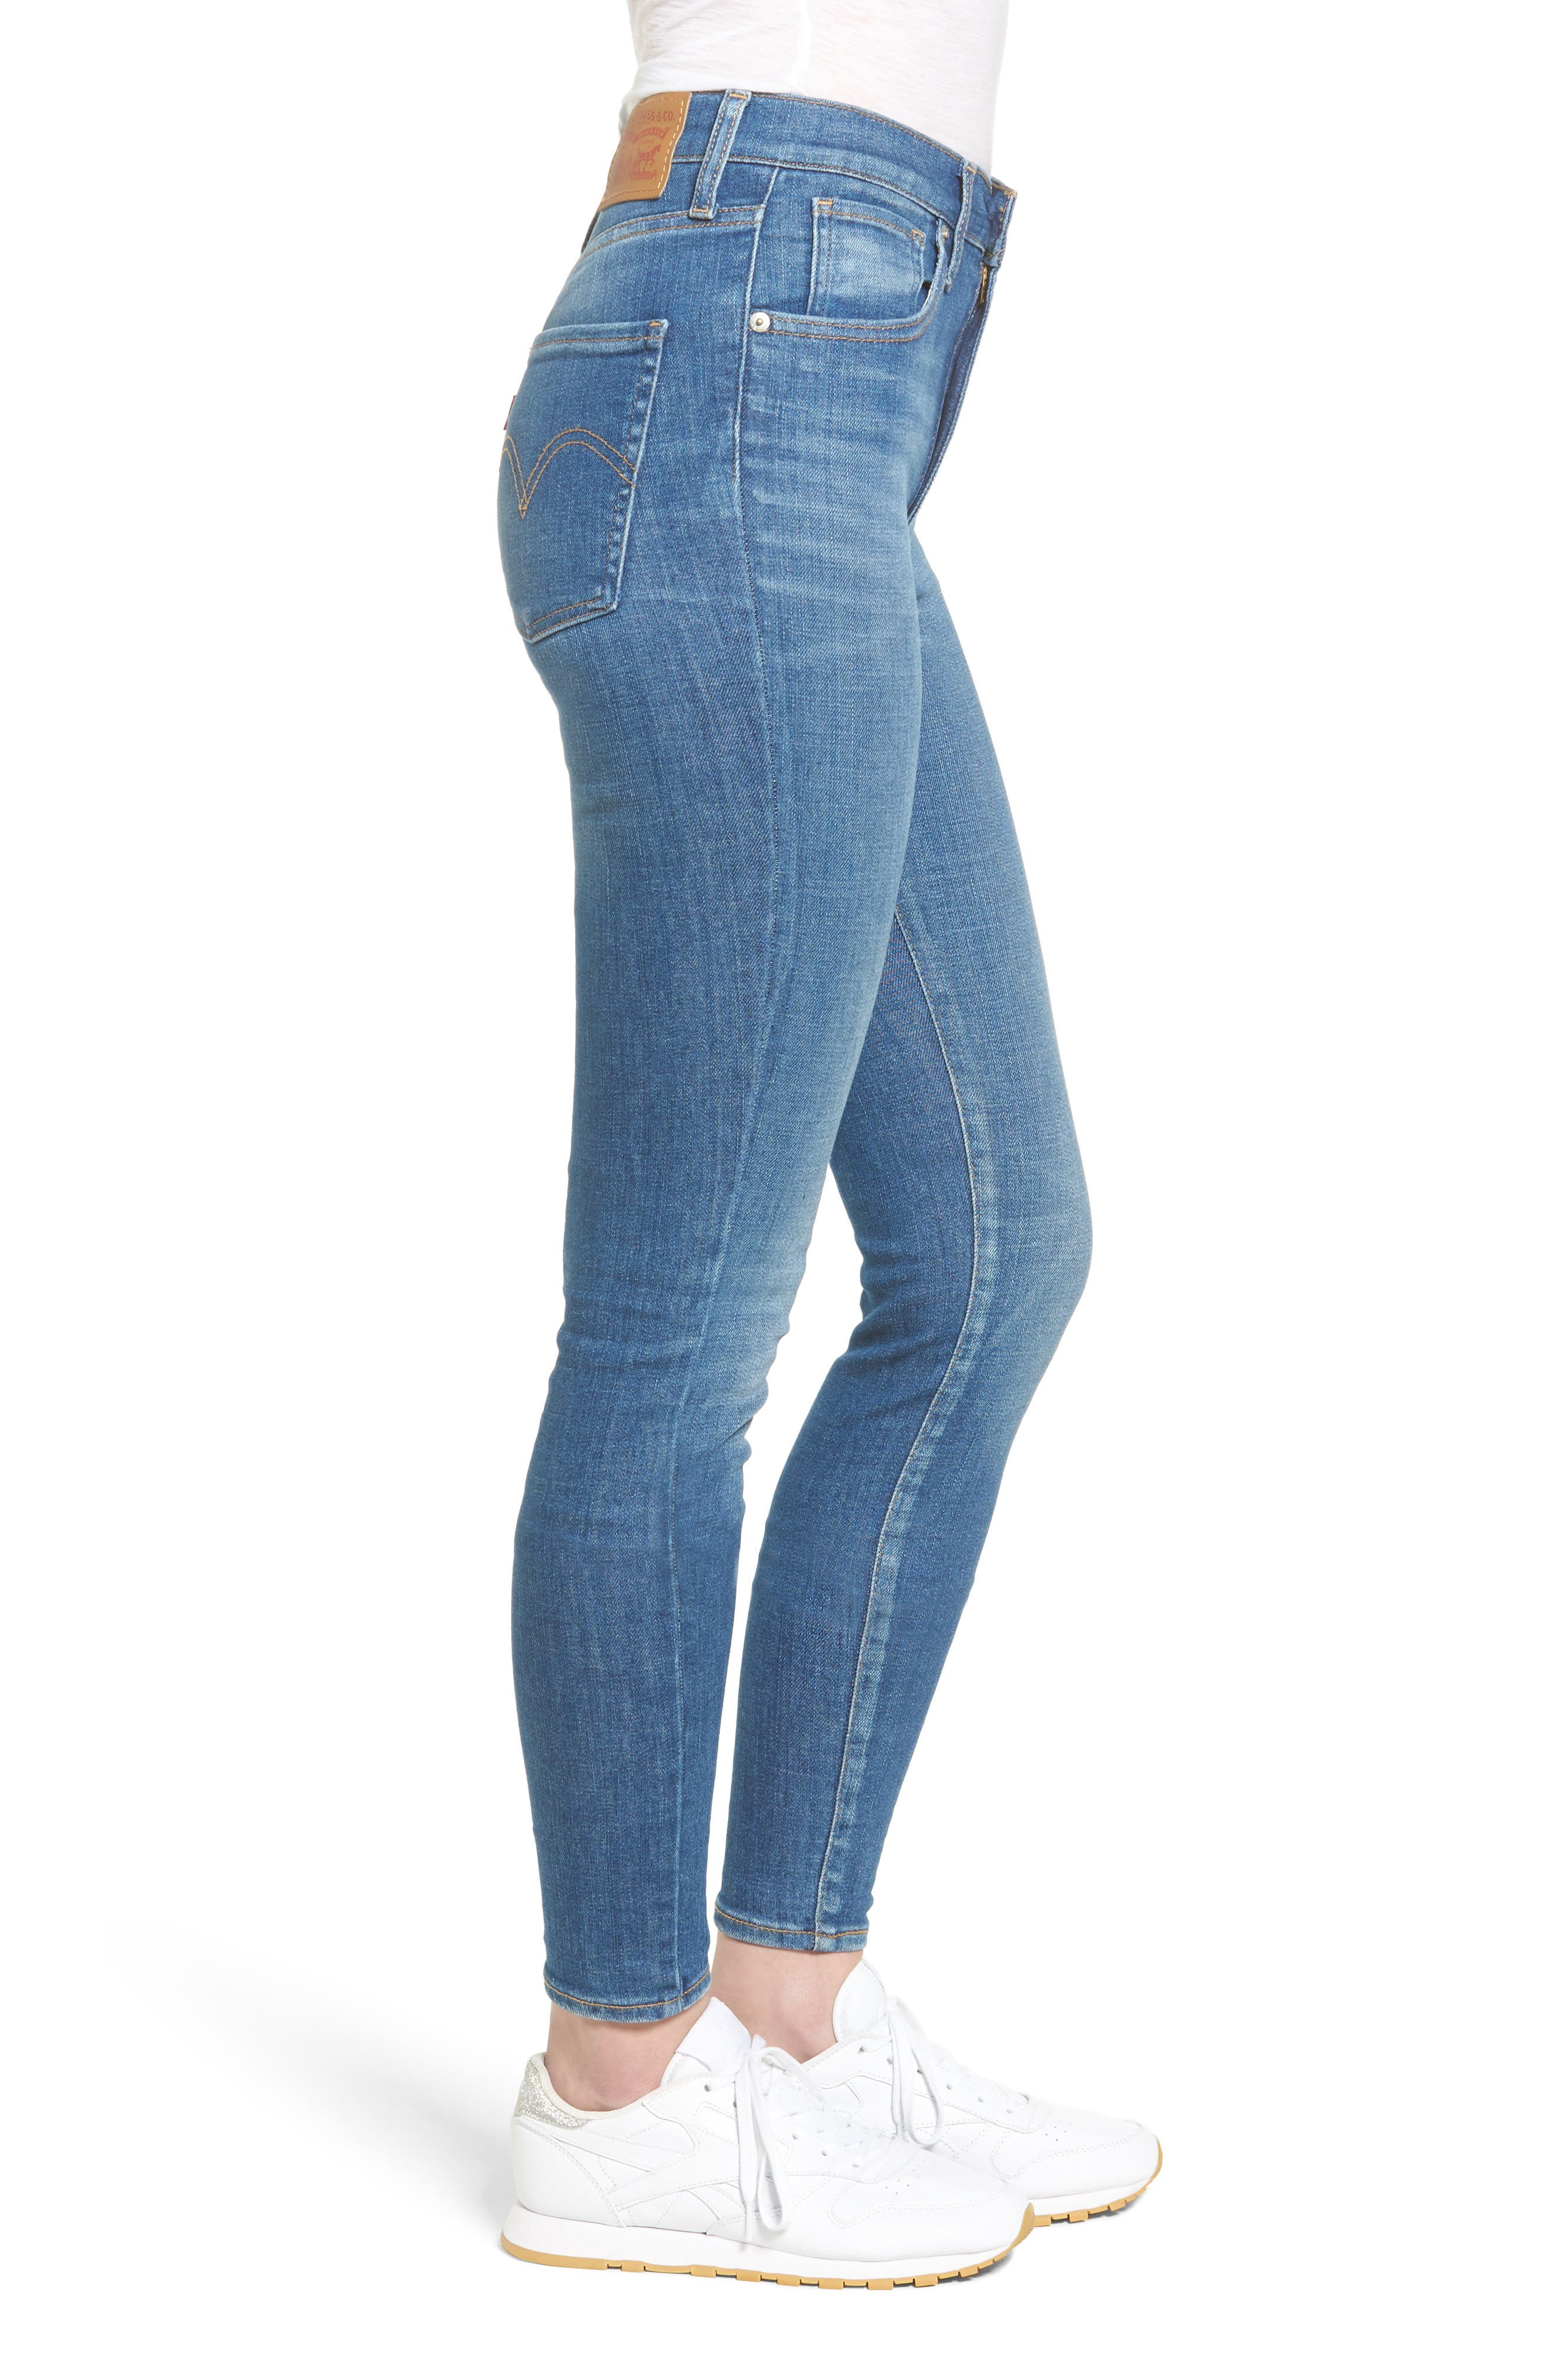 Mile High Skinny Jeans,                             Alternate thumbnail 3, color,                             Shut The Front Door